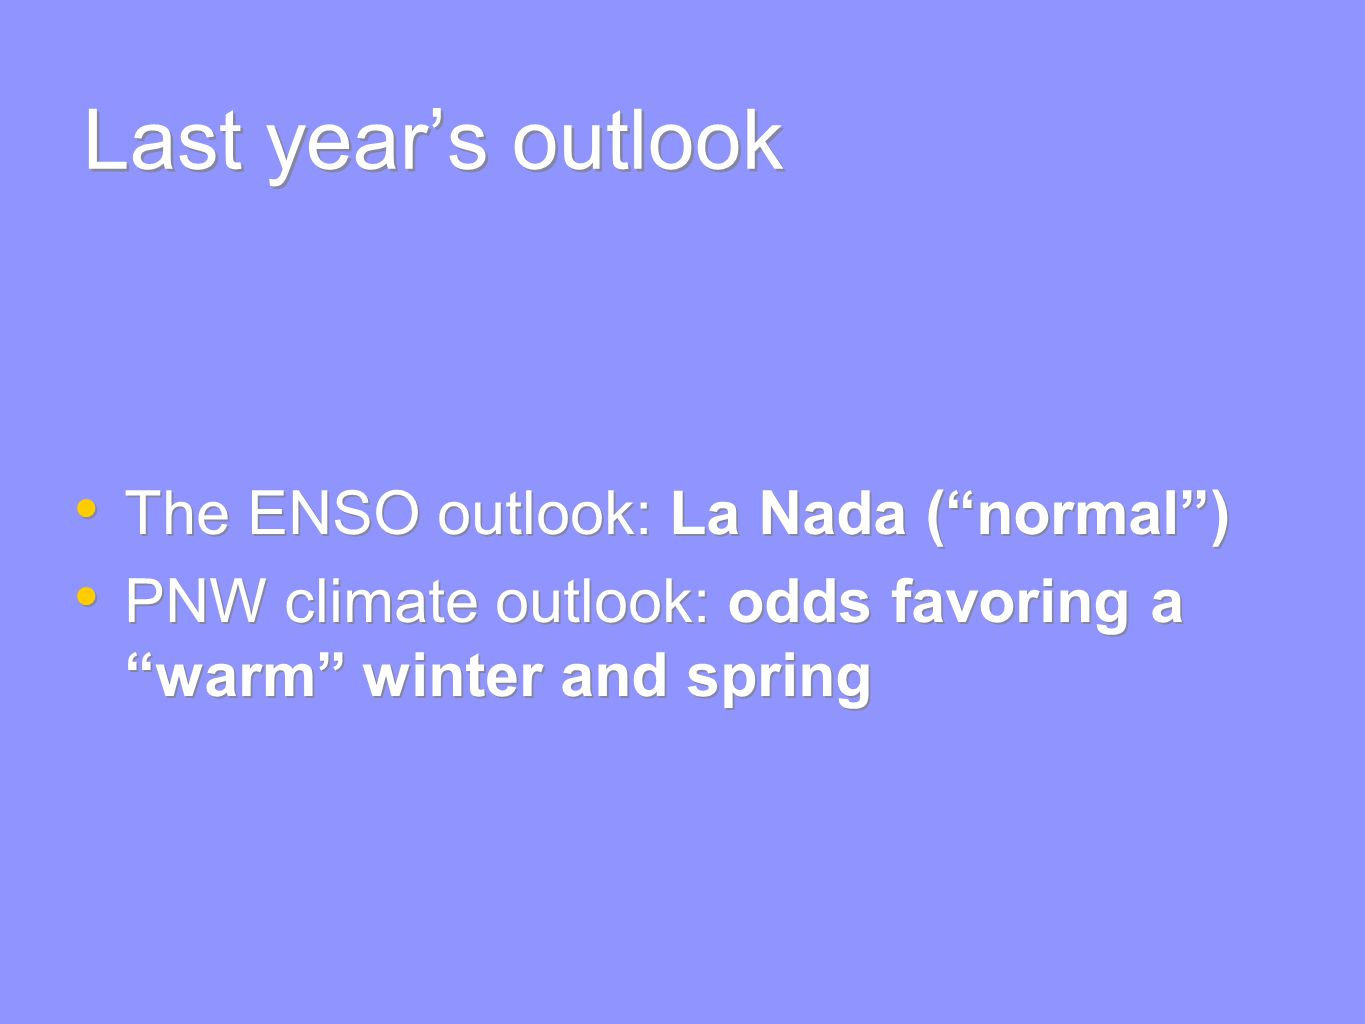 Last year's outlook The ENSO outlook: La Nada ( normal ) PNW climate outlook: odds favoring a warm winter and spring The ENSO outlook: La Nada ( normal ) PNW climate outlook: odds favoring a warm winter and spring